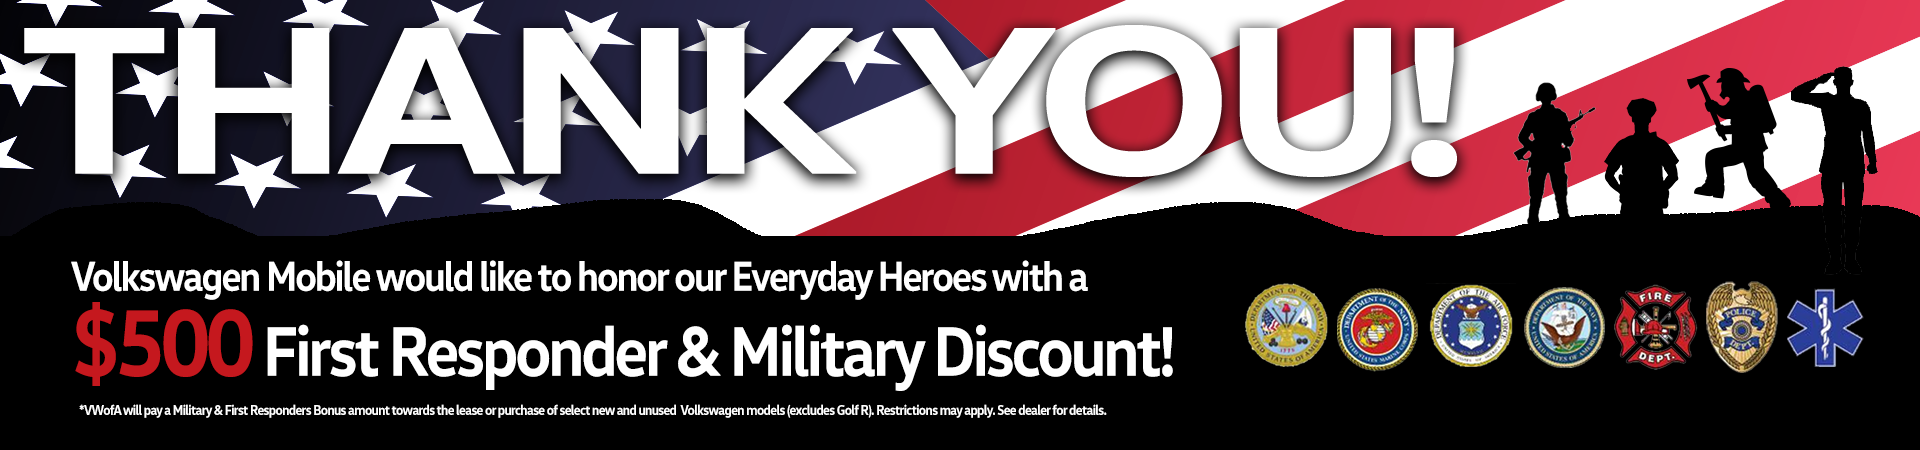 VW MOBILE_Military_First Responders_Discount